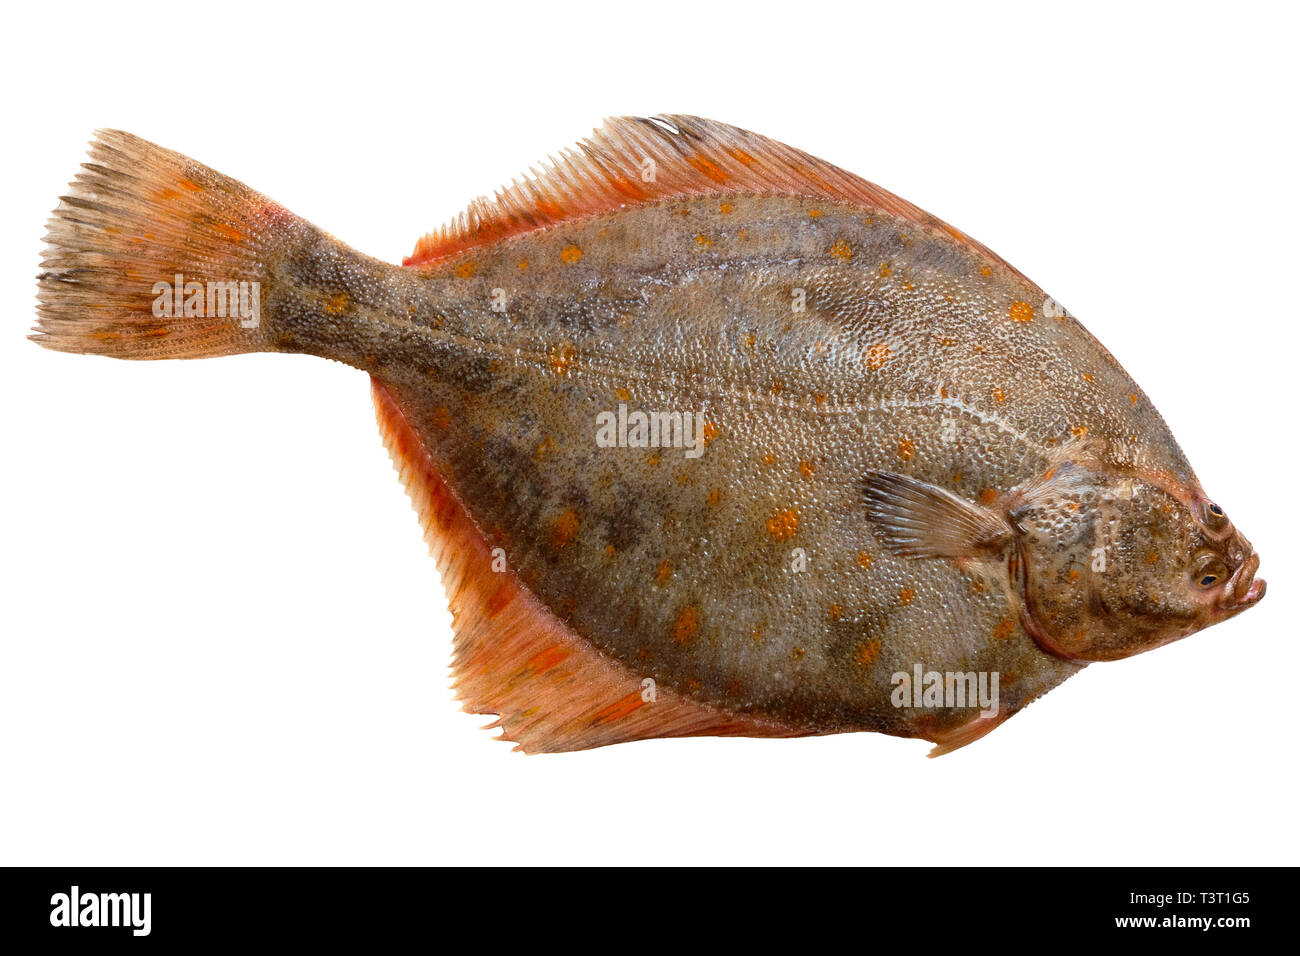 Whole single fresh raw plaice fish on a white background - Stock Image